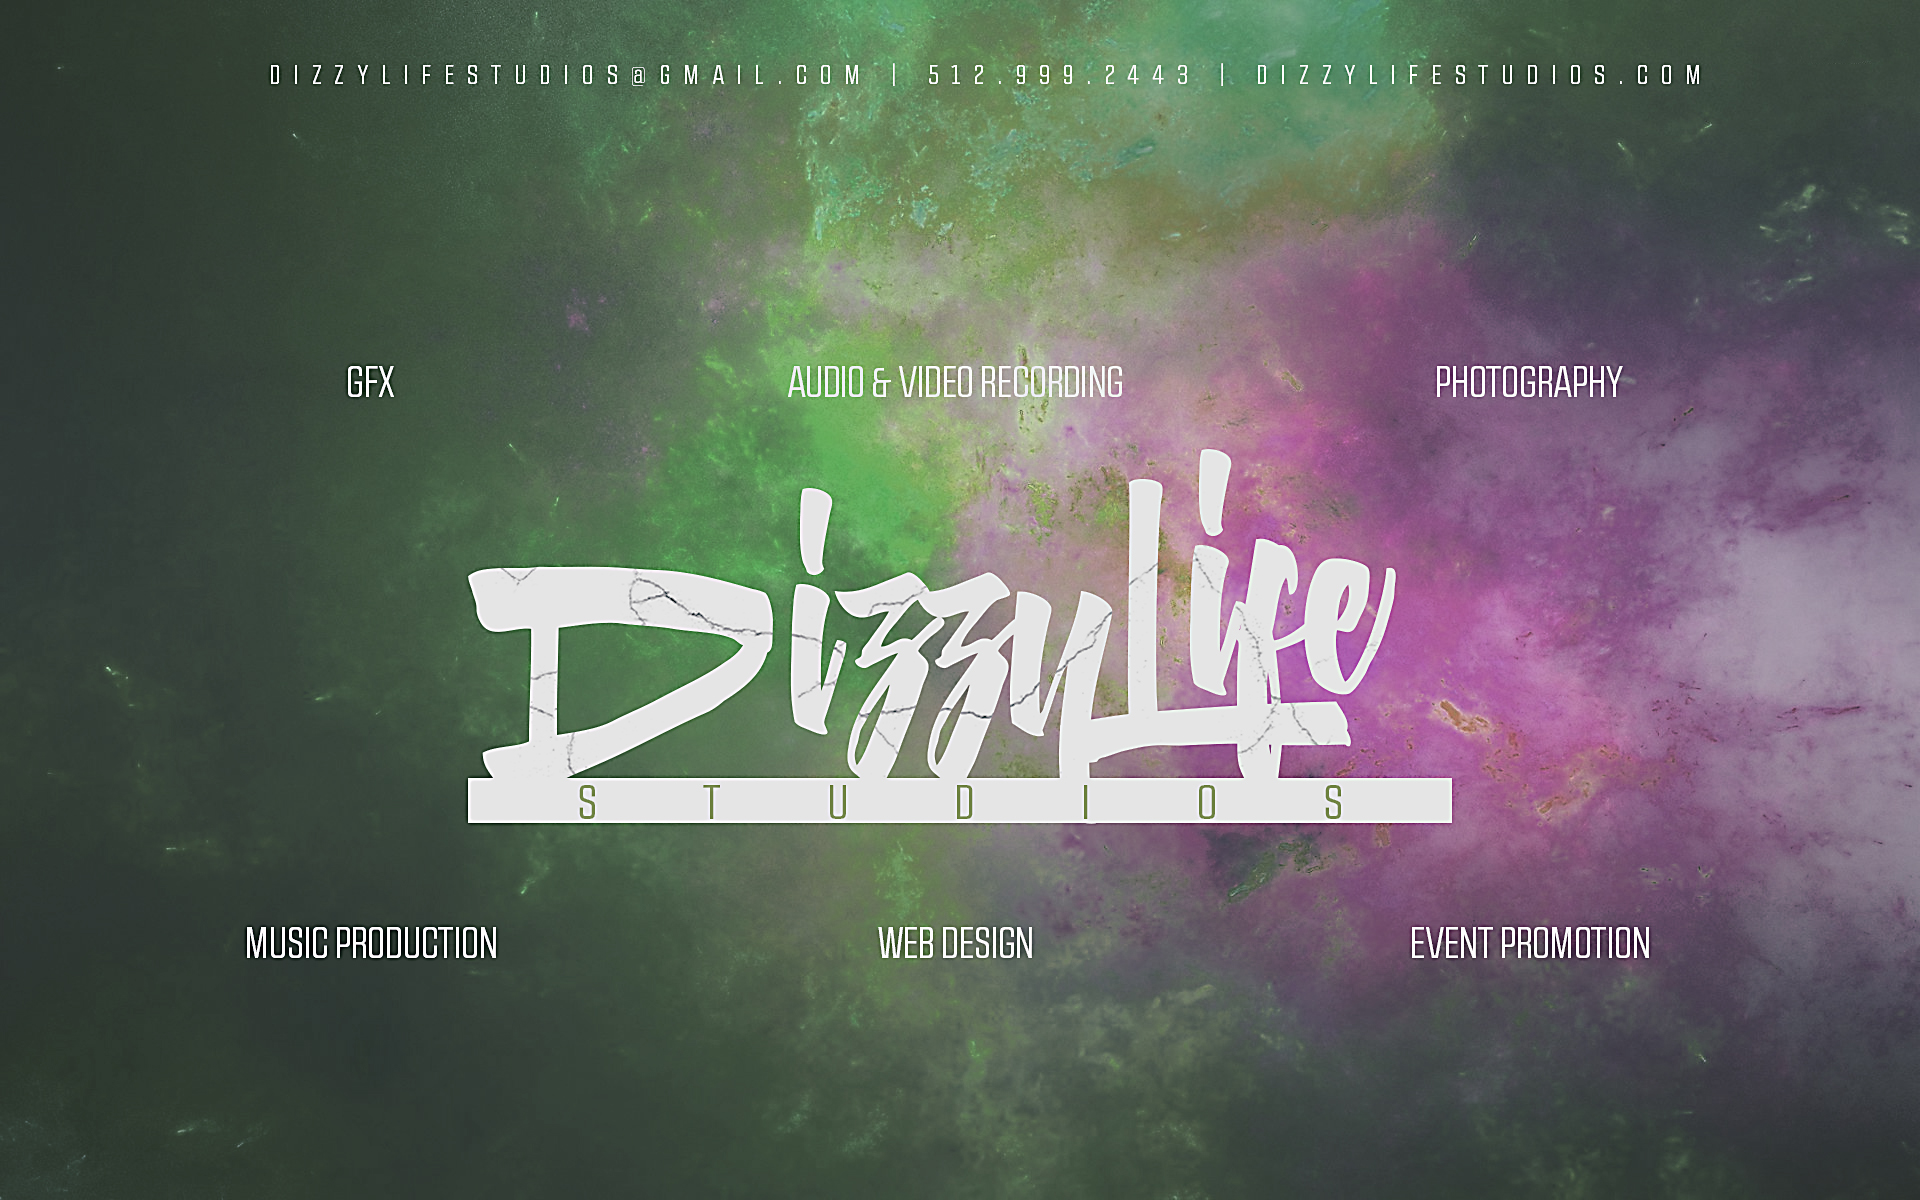 Dizzy_life_wallpaper